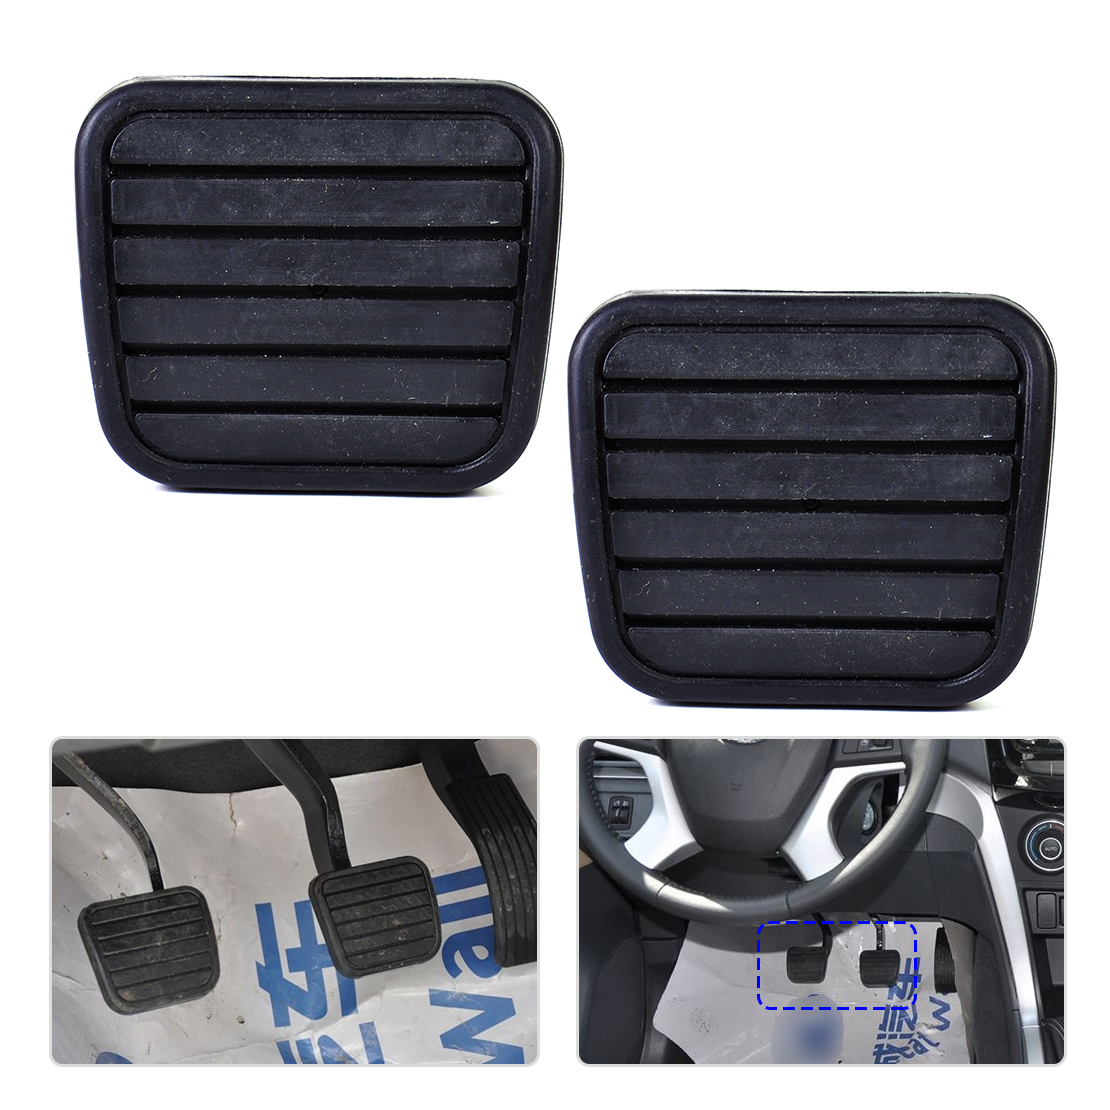 beler New 2x Rubber Car Clutch Brake Pedal Pad Cover For Great Wall V200 Man Dual Cab Pick-Up RWD 2012 2013 2014 2015 2016